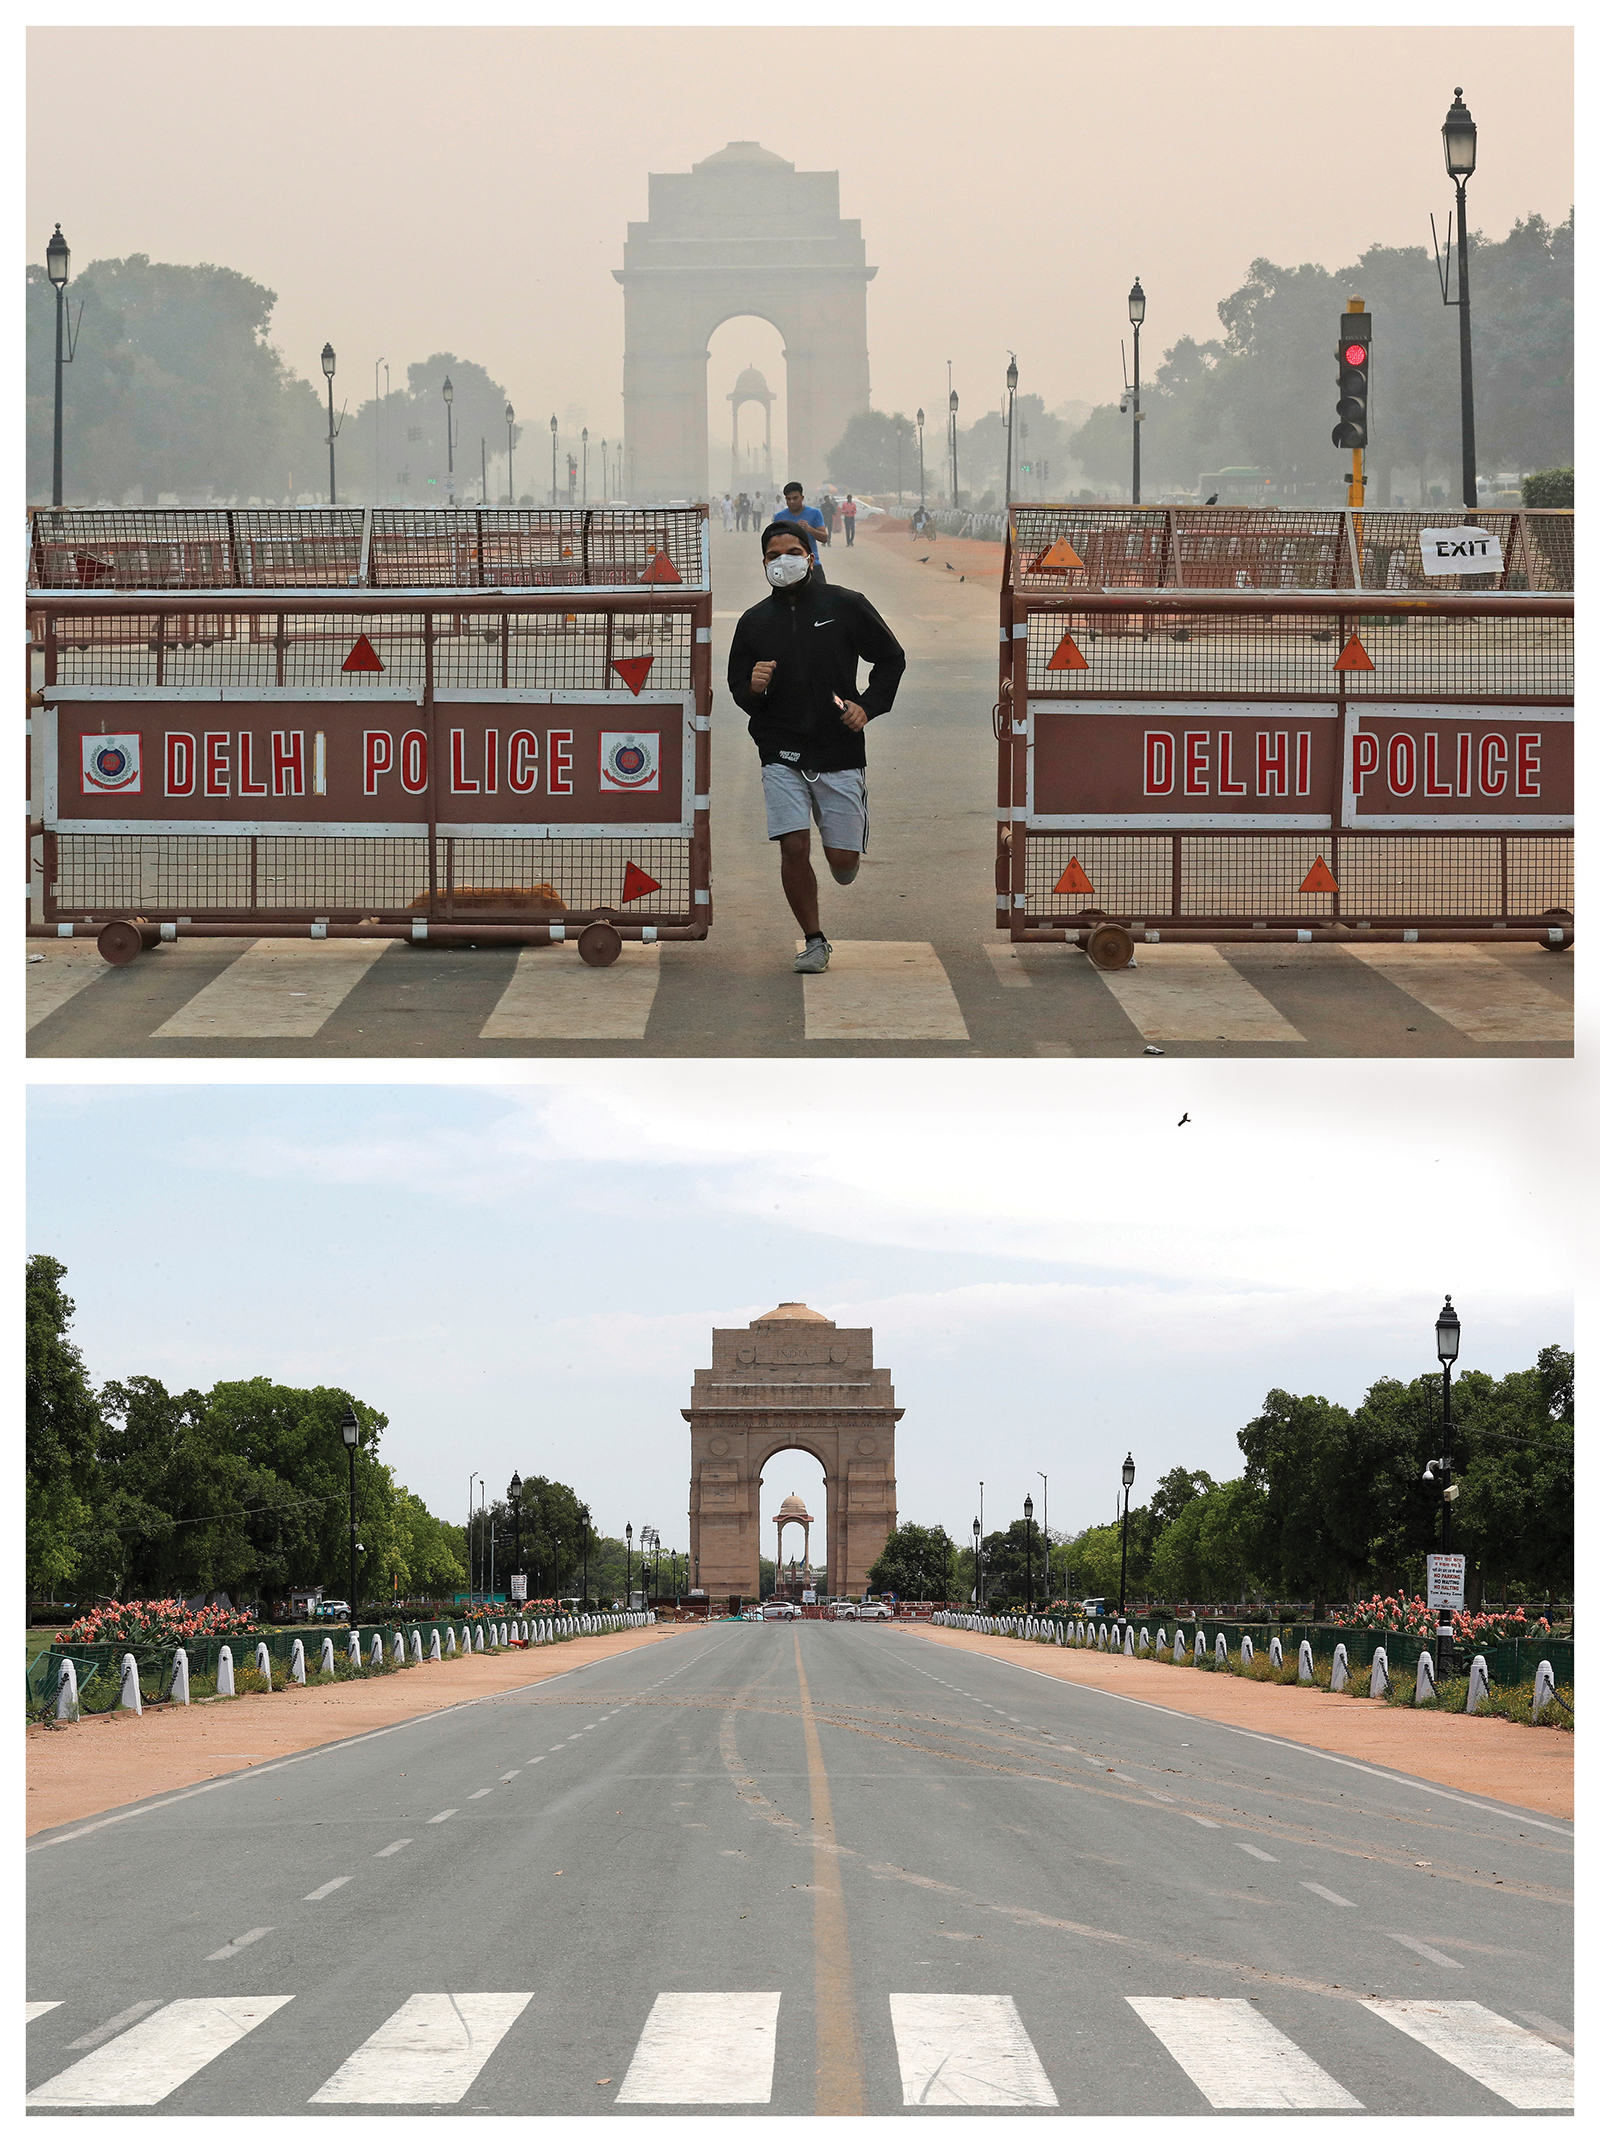 """The pandemic has shifted investor priorities in what Hartford calls """"an awareness wake-up call."""" This metropolitan area in India, once covered in smog, was clear during the pandemic when fewer people were out on the road, causing many to look at the ways our everyday choices are affecting the planet."""